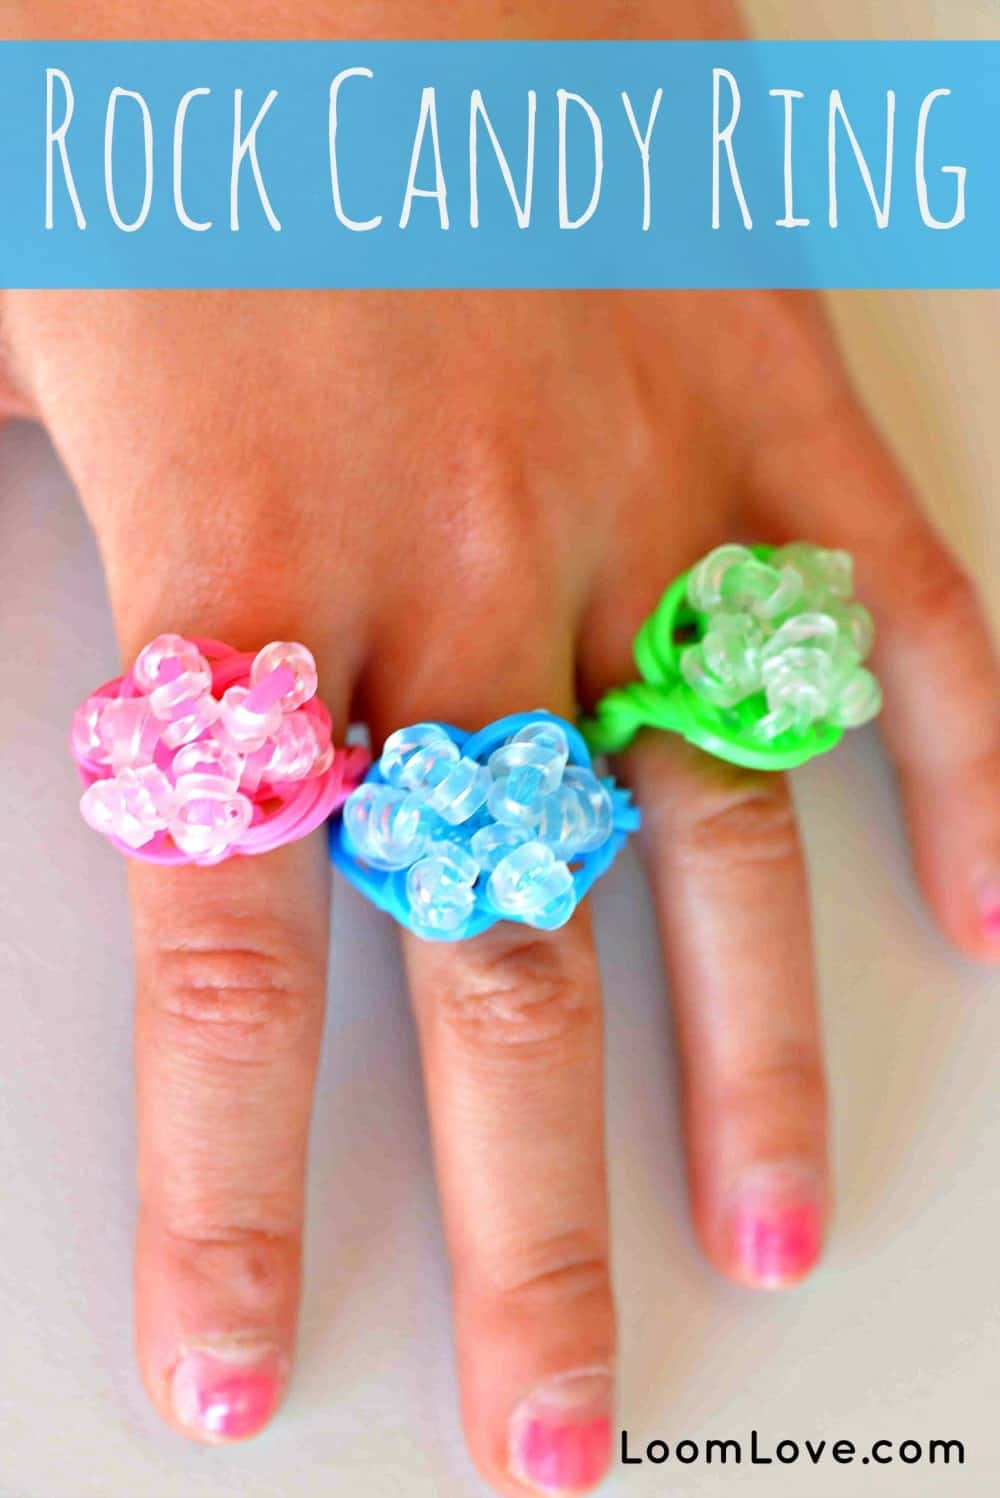 Rock candy rings